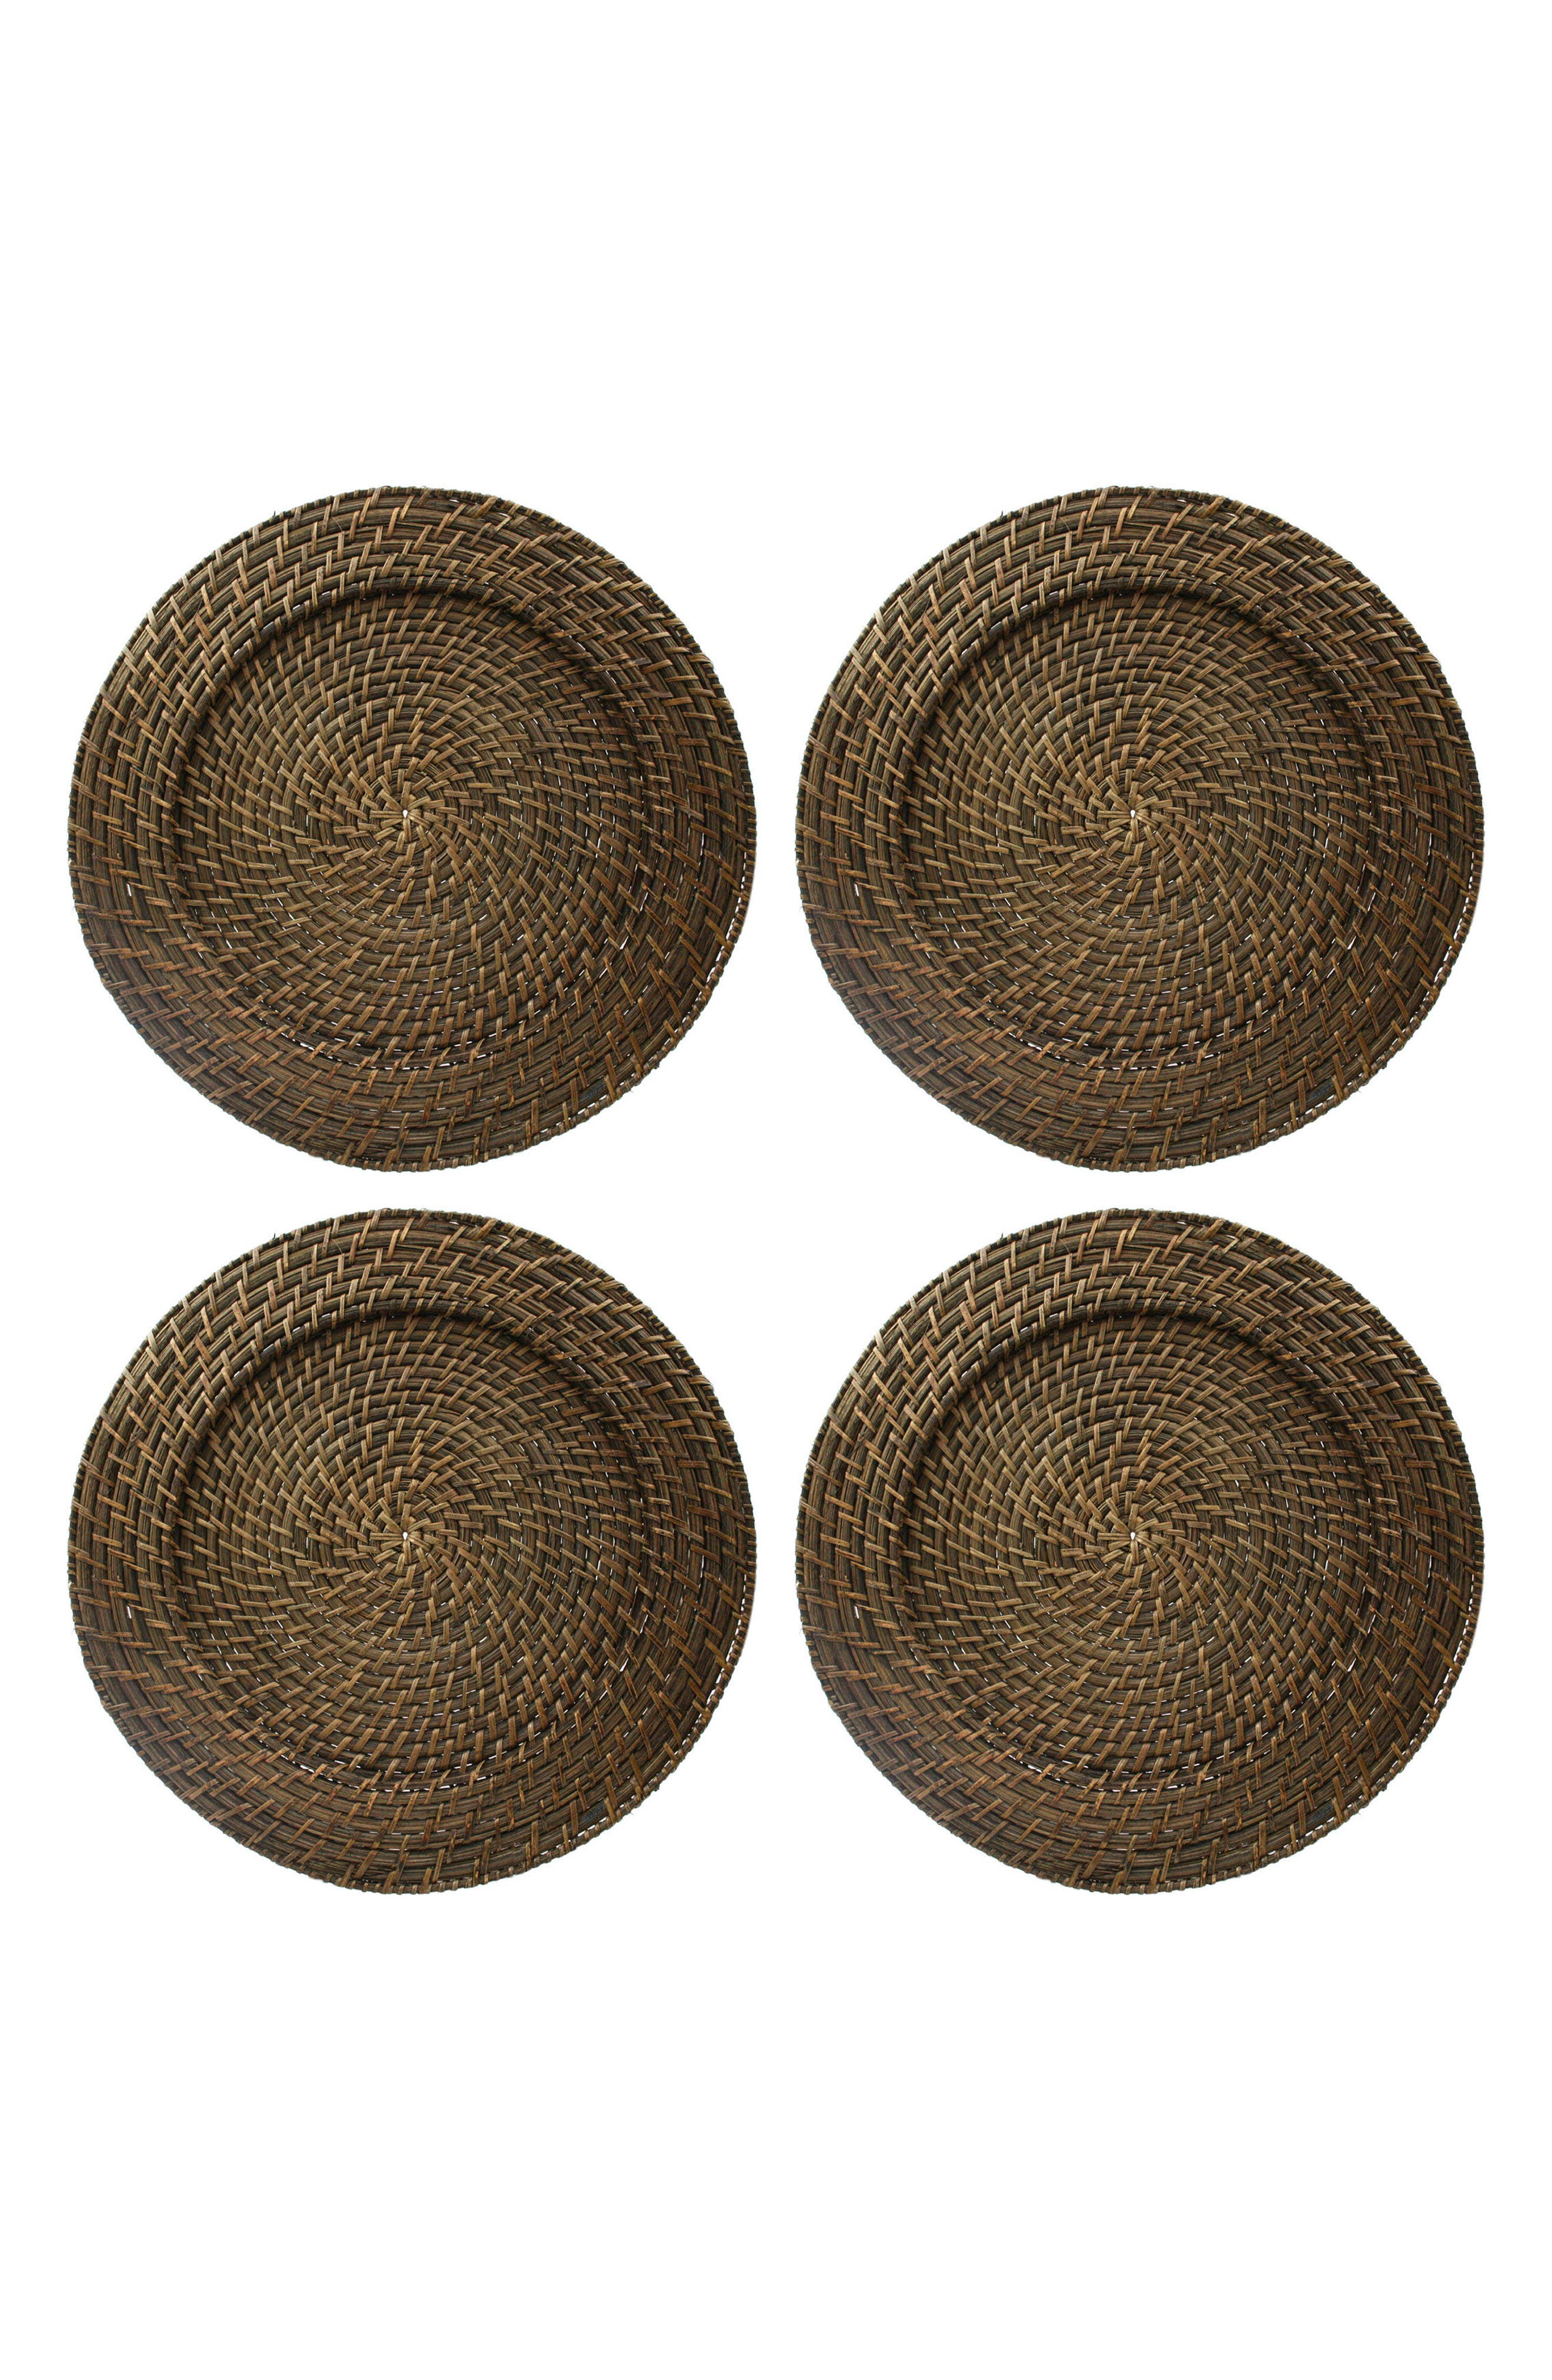 Main Image - American Atelier Set of 4 Rattan Charger Plates